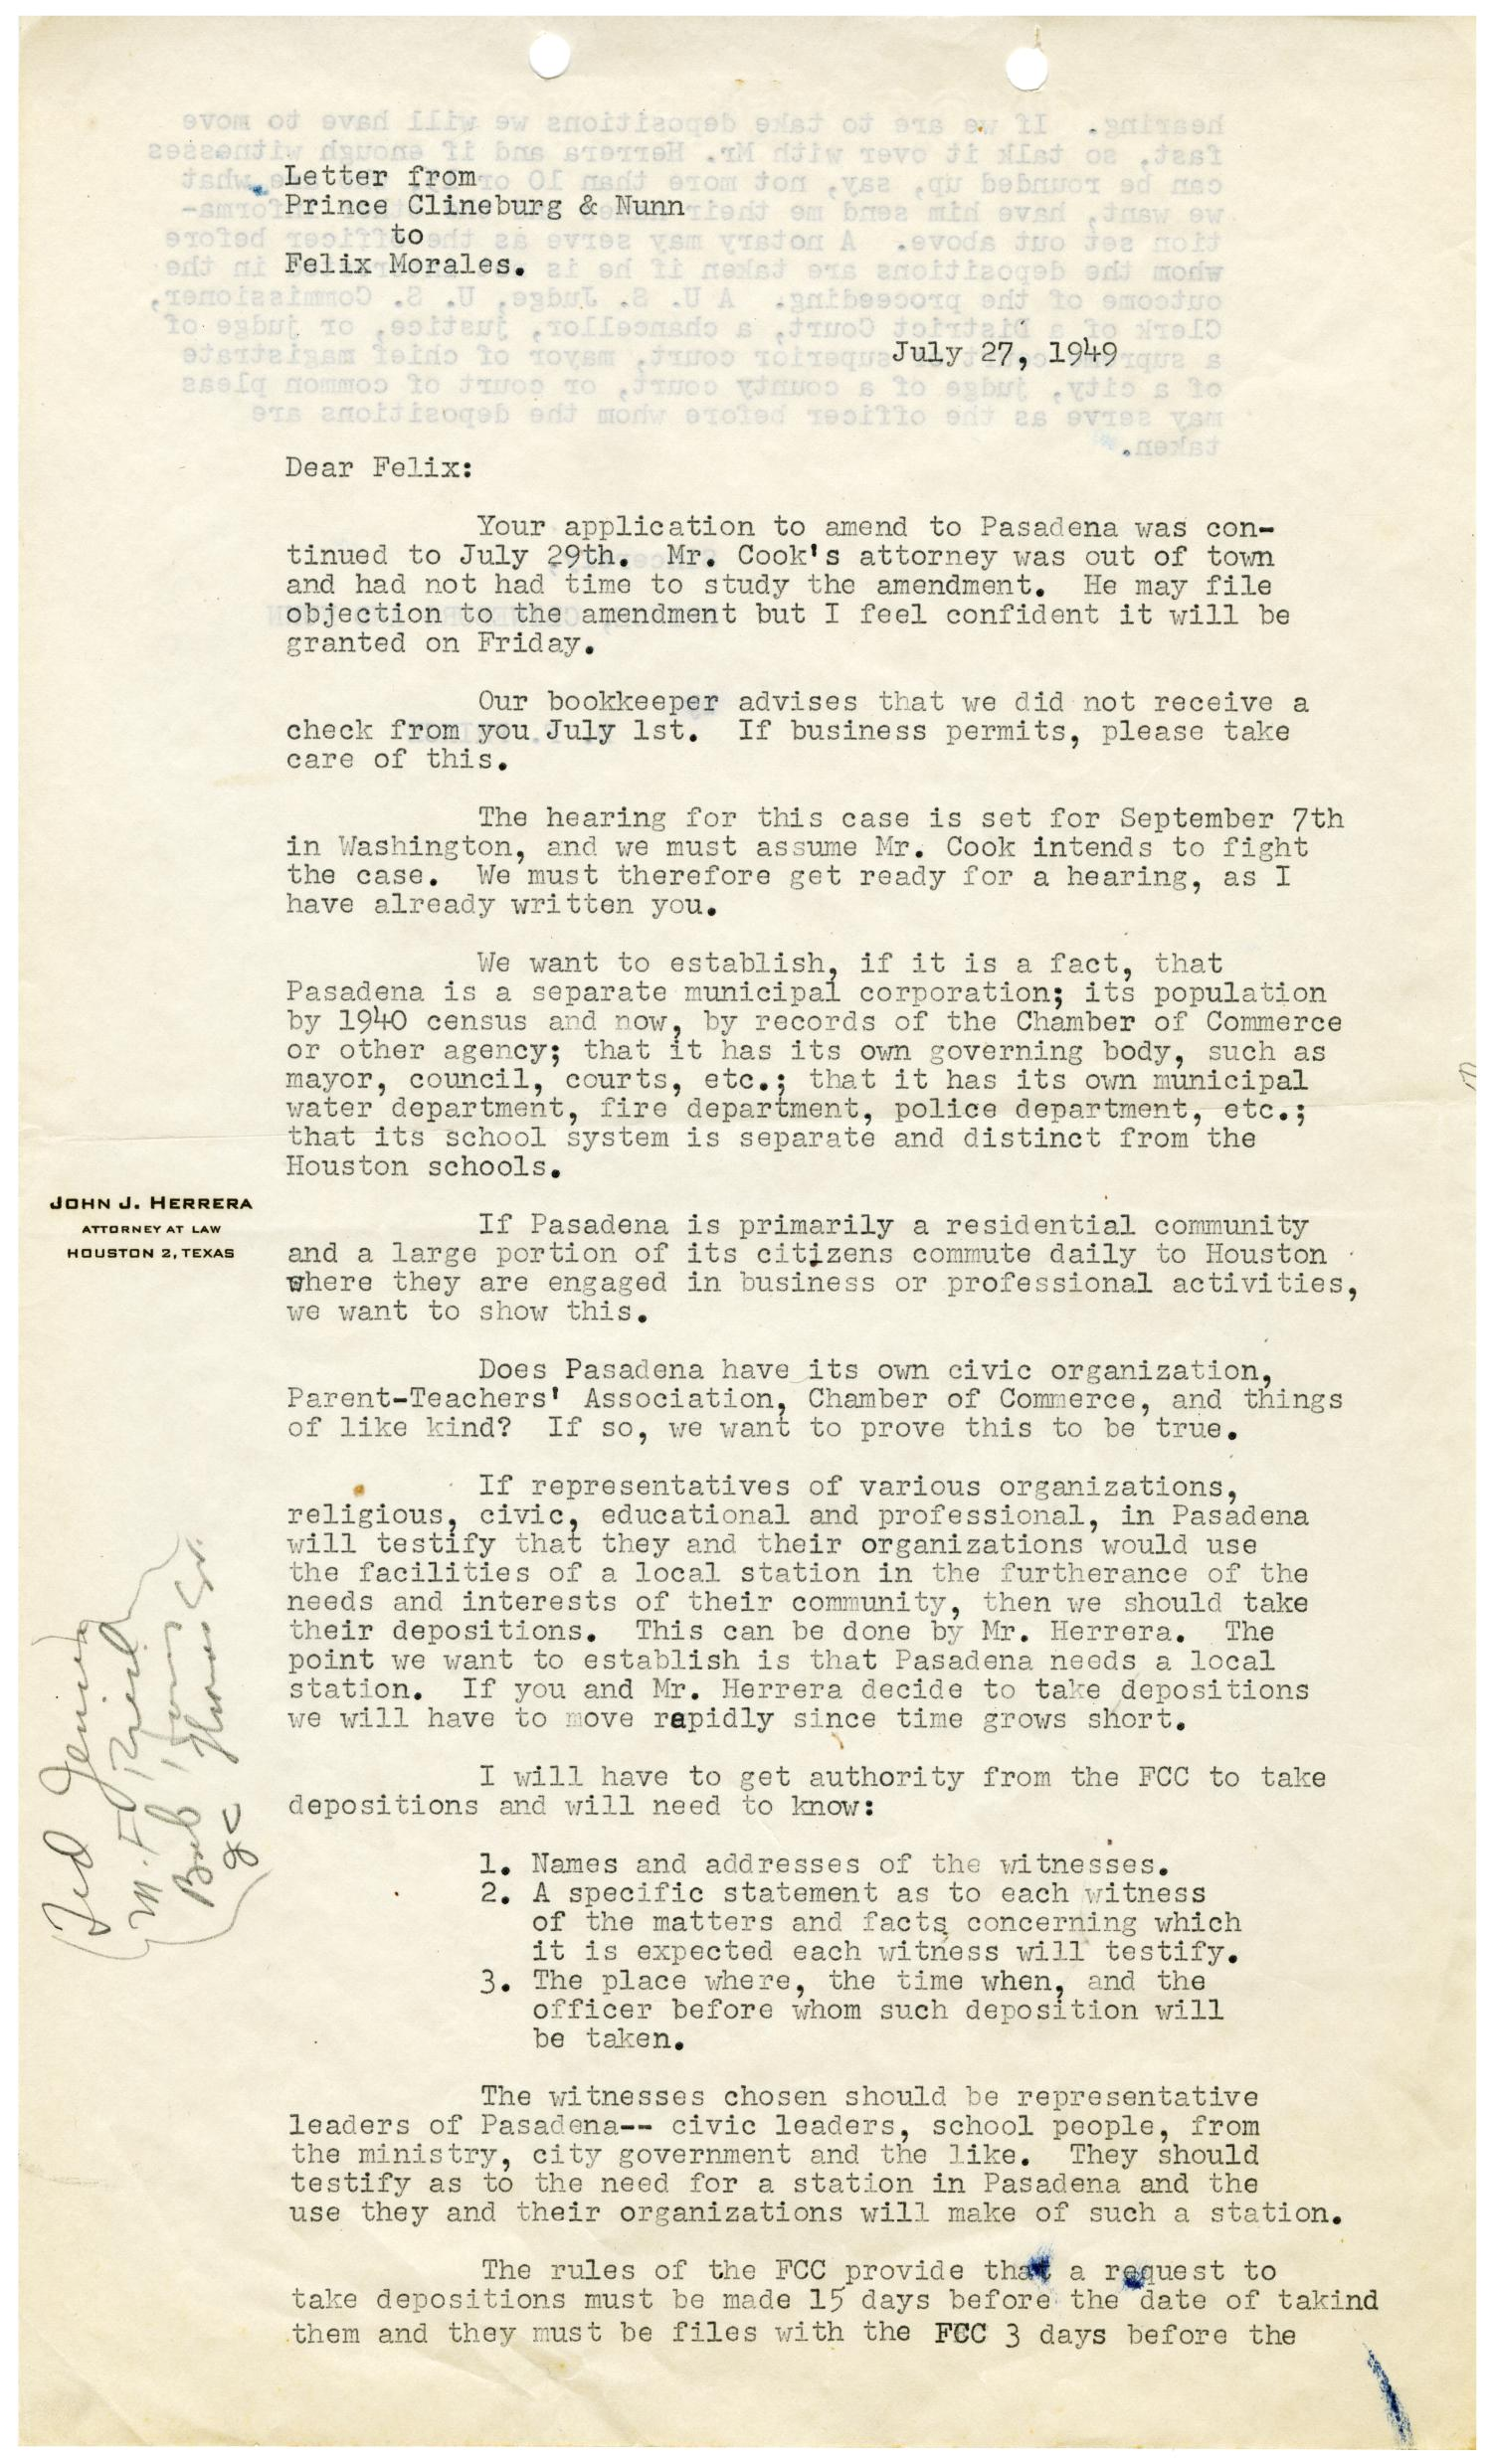 Letter from Prince Clineburg & Nunn to Felix H Morales 1949 07 27